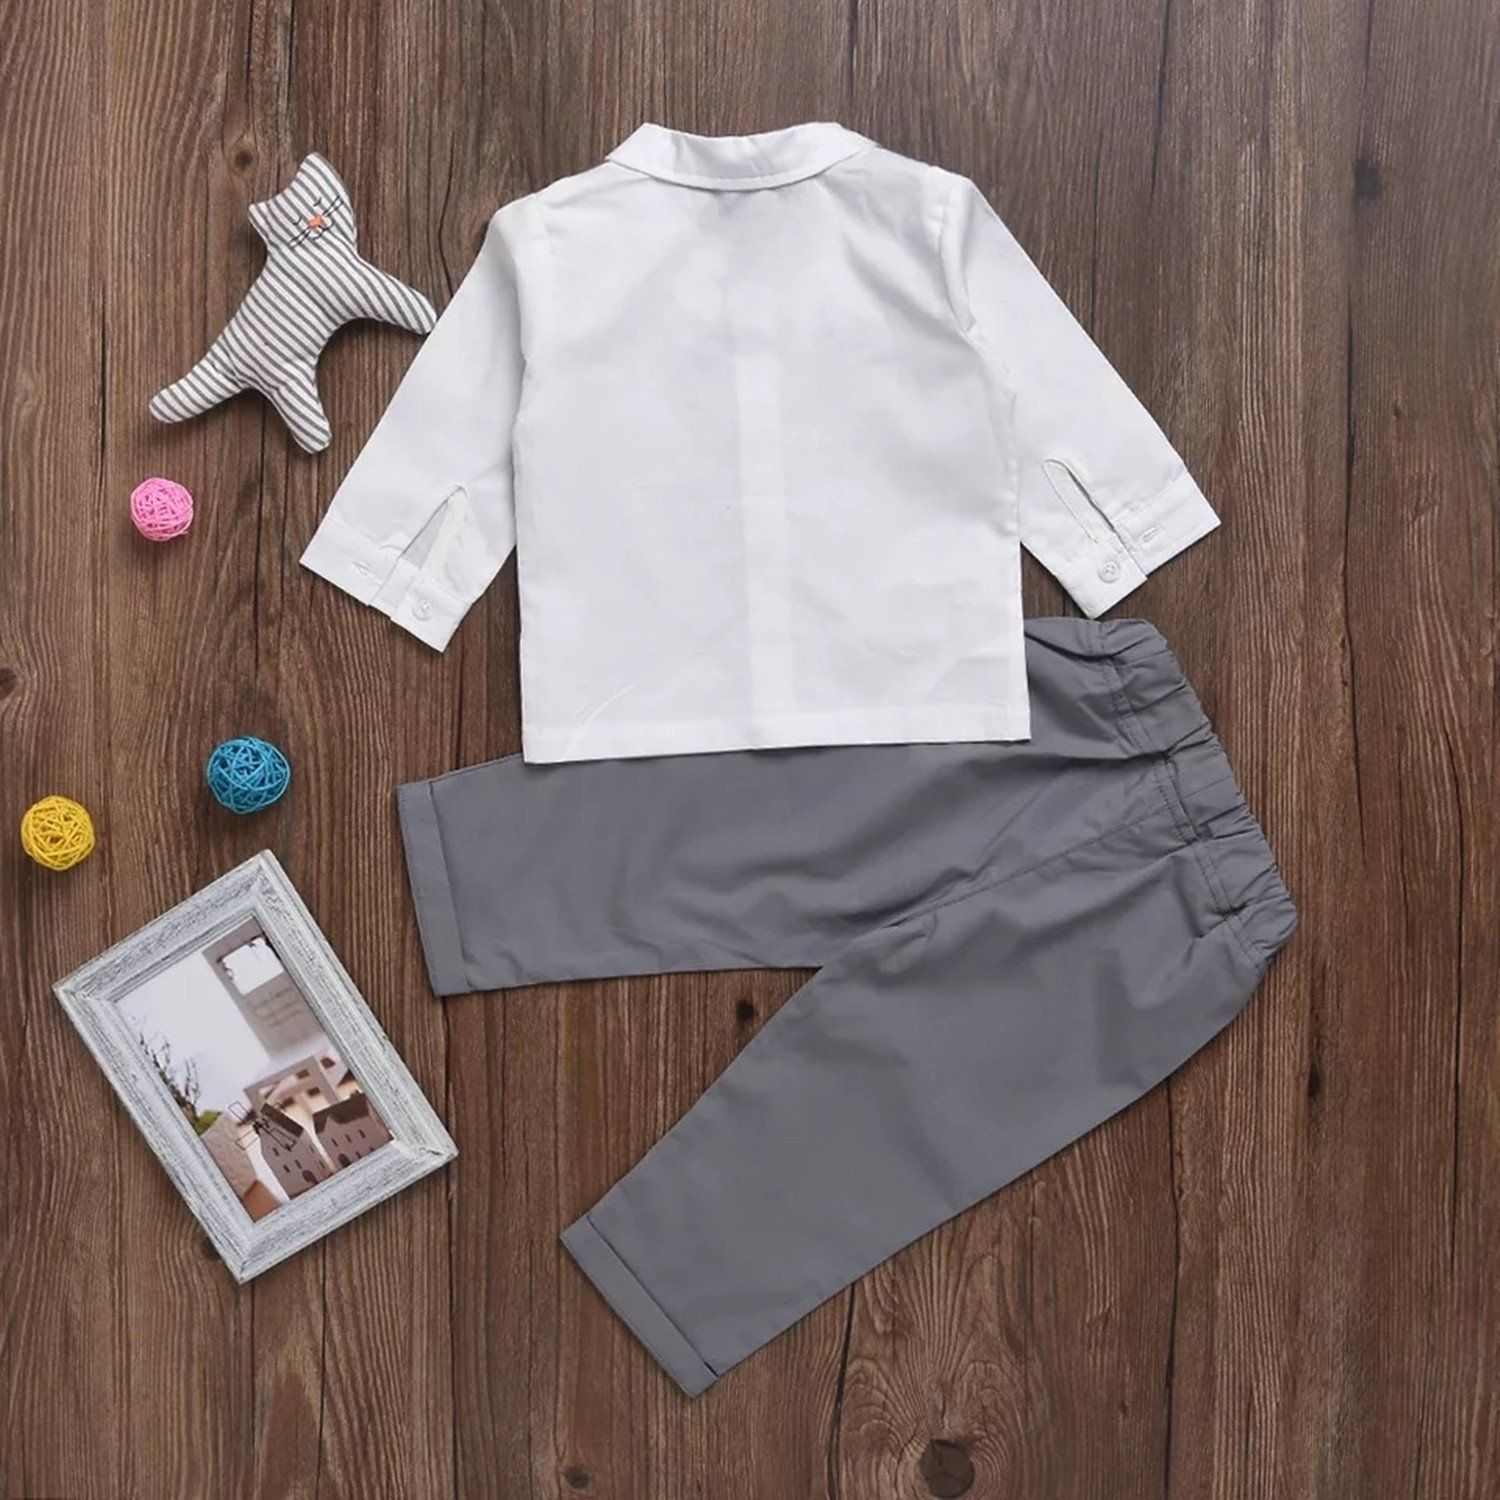 e01828d979c4 Infant and Toddler Baby Boy Gentleman Formal Party Wedding Suits Outfits  612Months Grey >>> For additional information, visit photo web link.